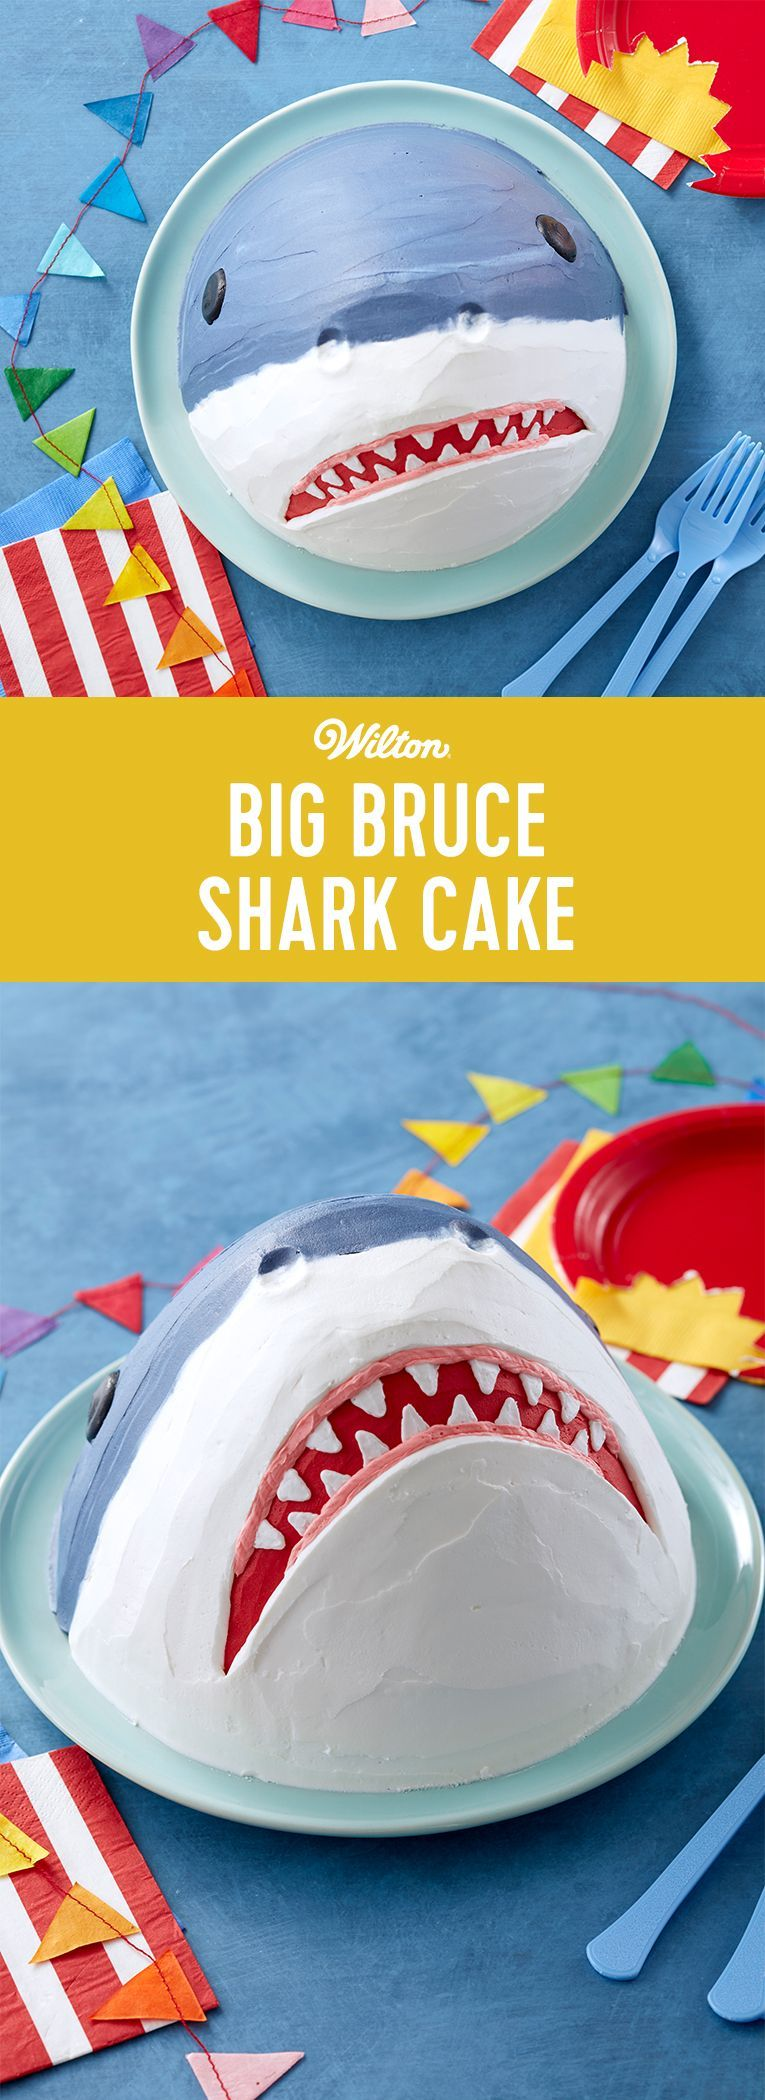 Big Bruce Shark Cake - How Jaw-some is this cake?! Made using the Wilton Wonder Mold Pan, this Big Bruce Shark Cake is ready to take a bite out of your next birthday celebration! Great for decorators who are looking for some serious shock value, this shark cake can be made with just a handful of supplies and is sure to be a blockbuster at your next summer party! kids cakes Big Bruce Shark Cake